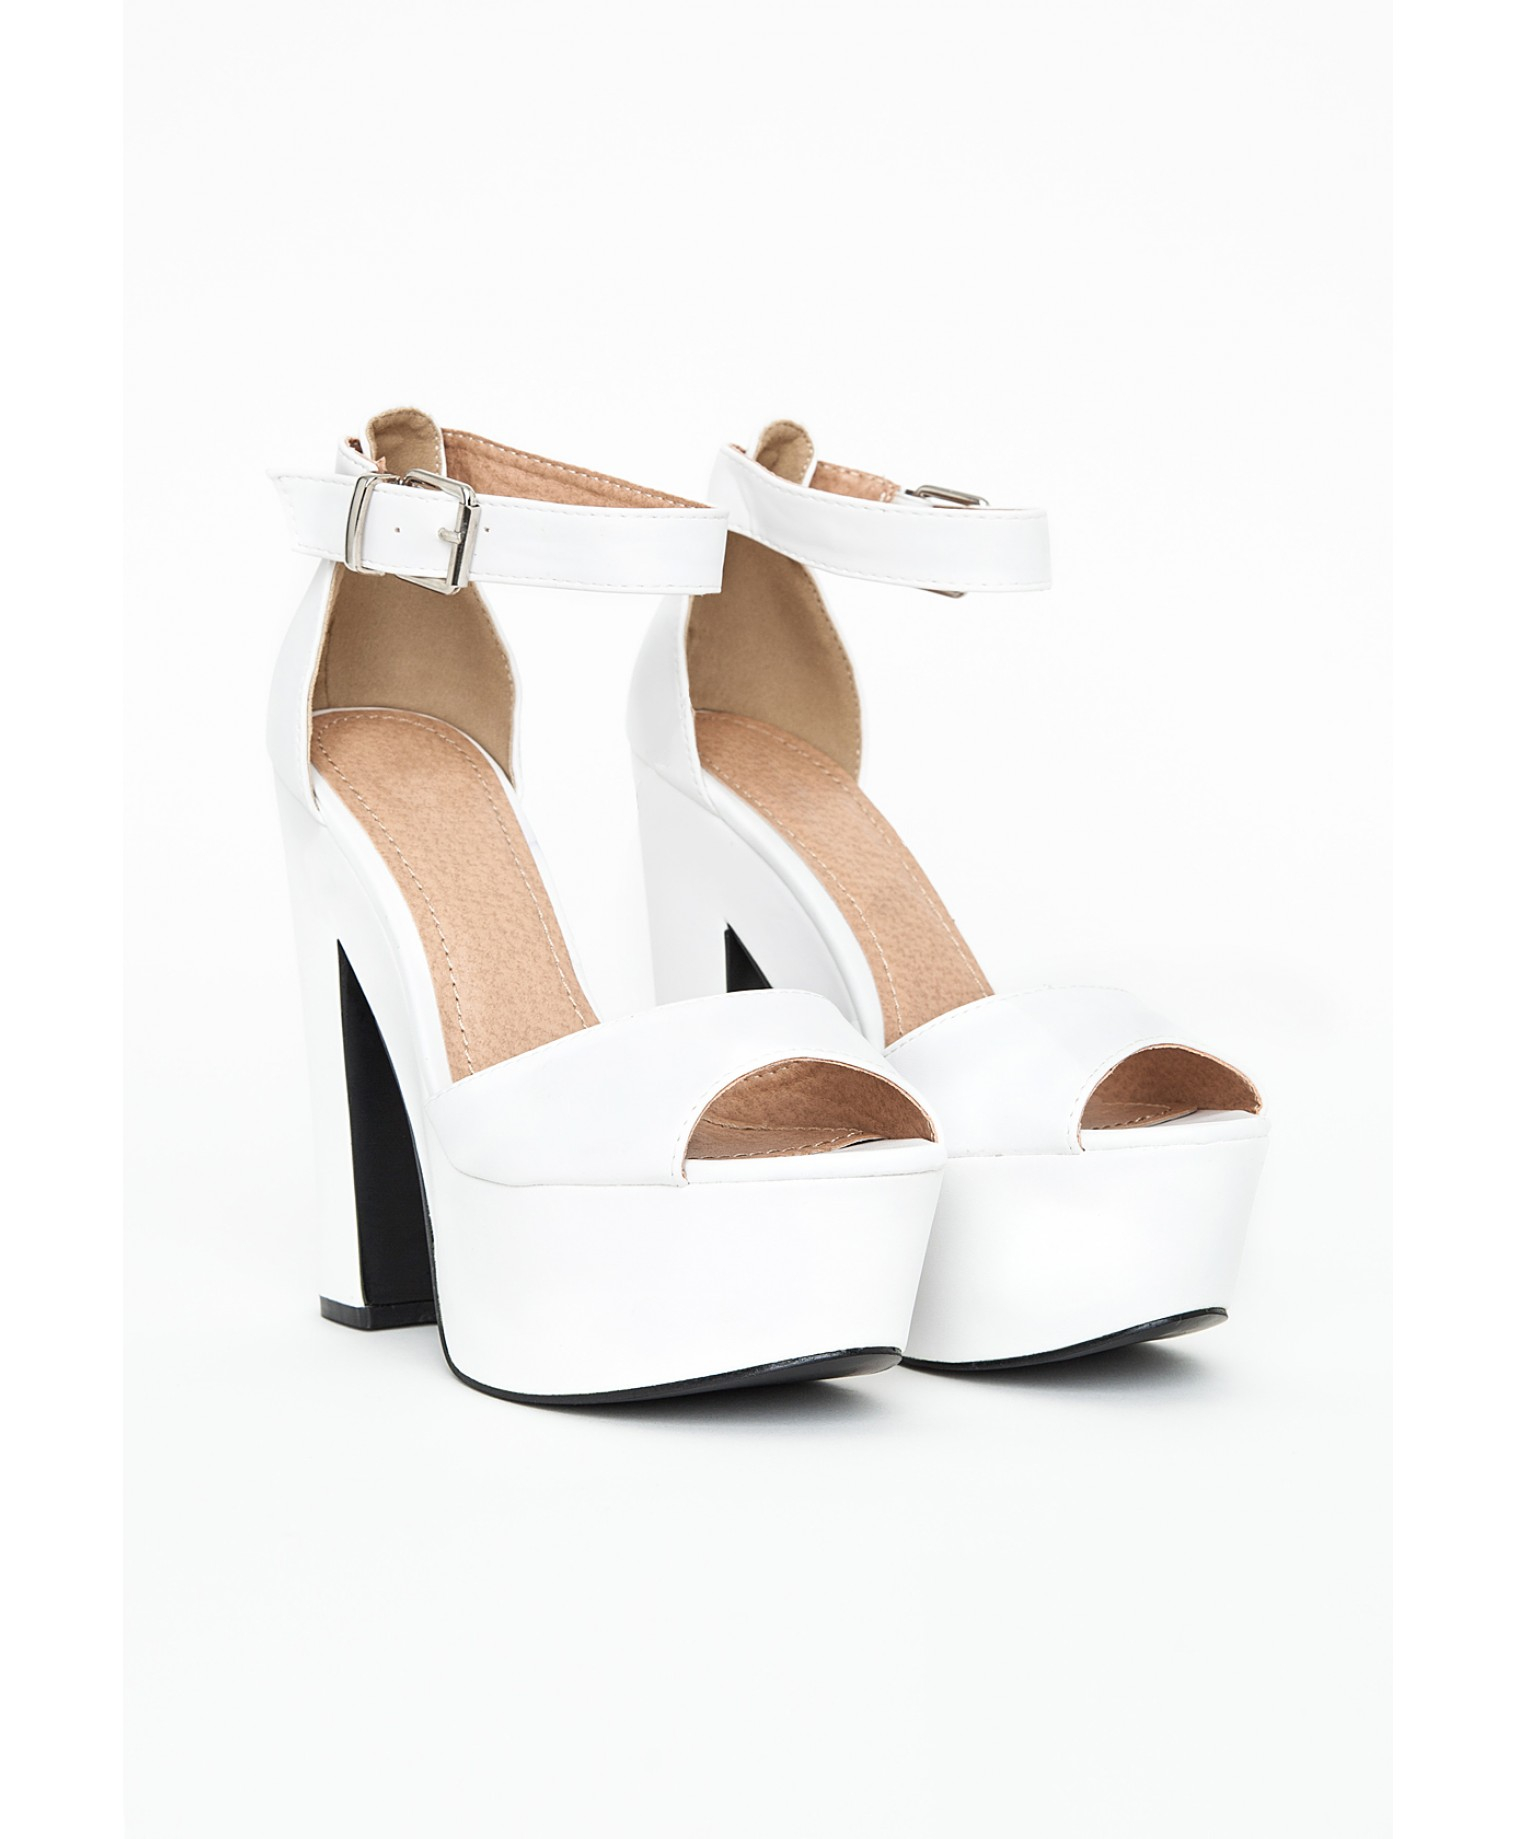 Lyst - Missguided Alana Platform Block Heels In White in White